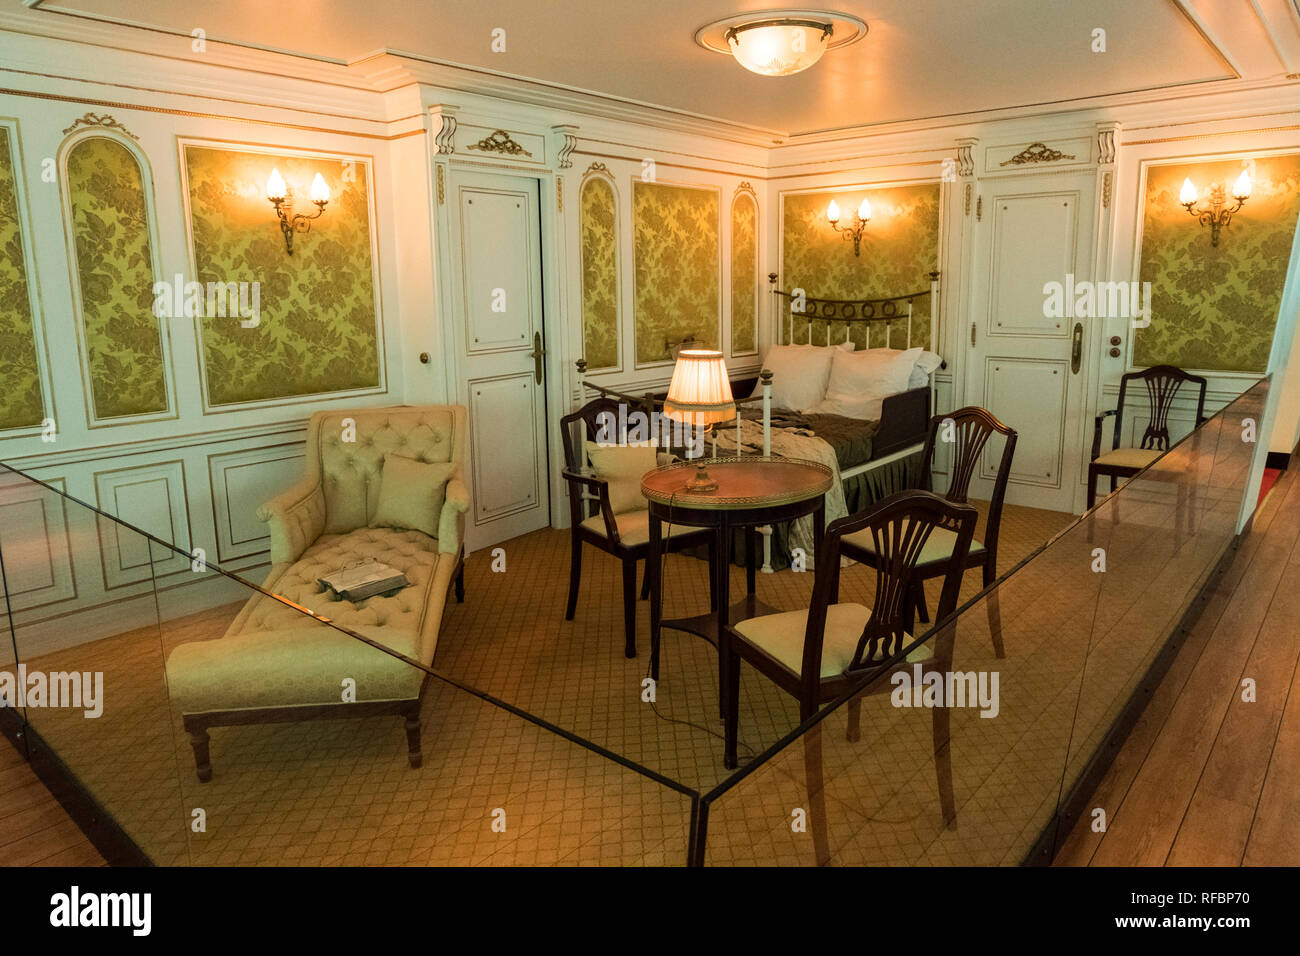 Cherbourg-Octeville, France - August 26, 2018: Mockup of the 1st class cabin of the Titanic at the Cite de la Mer museum of Cherbourg, France. - Stock Image